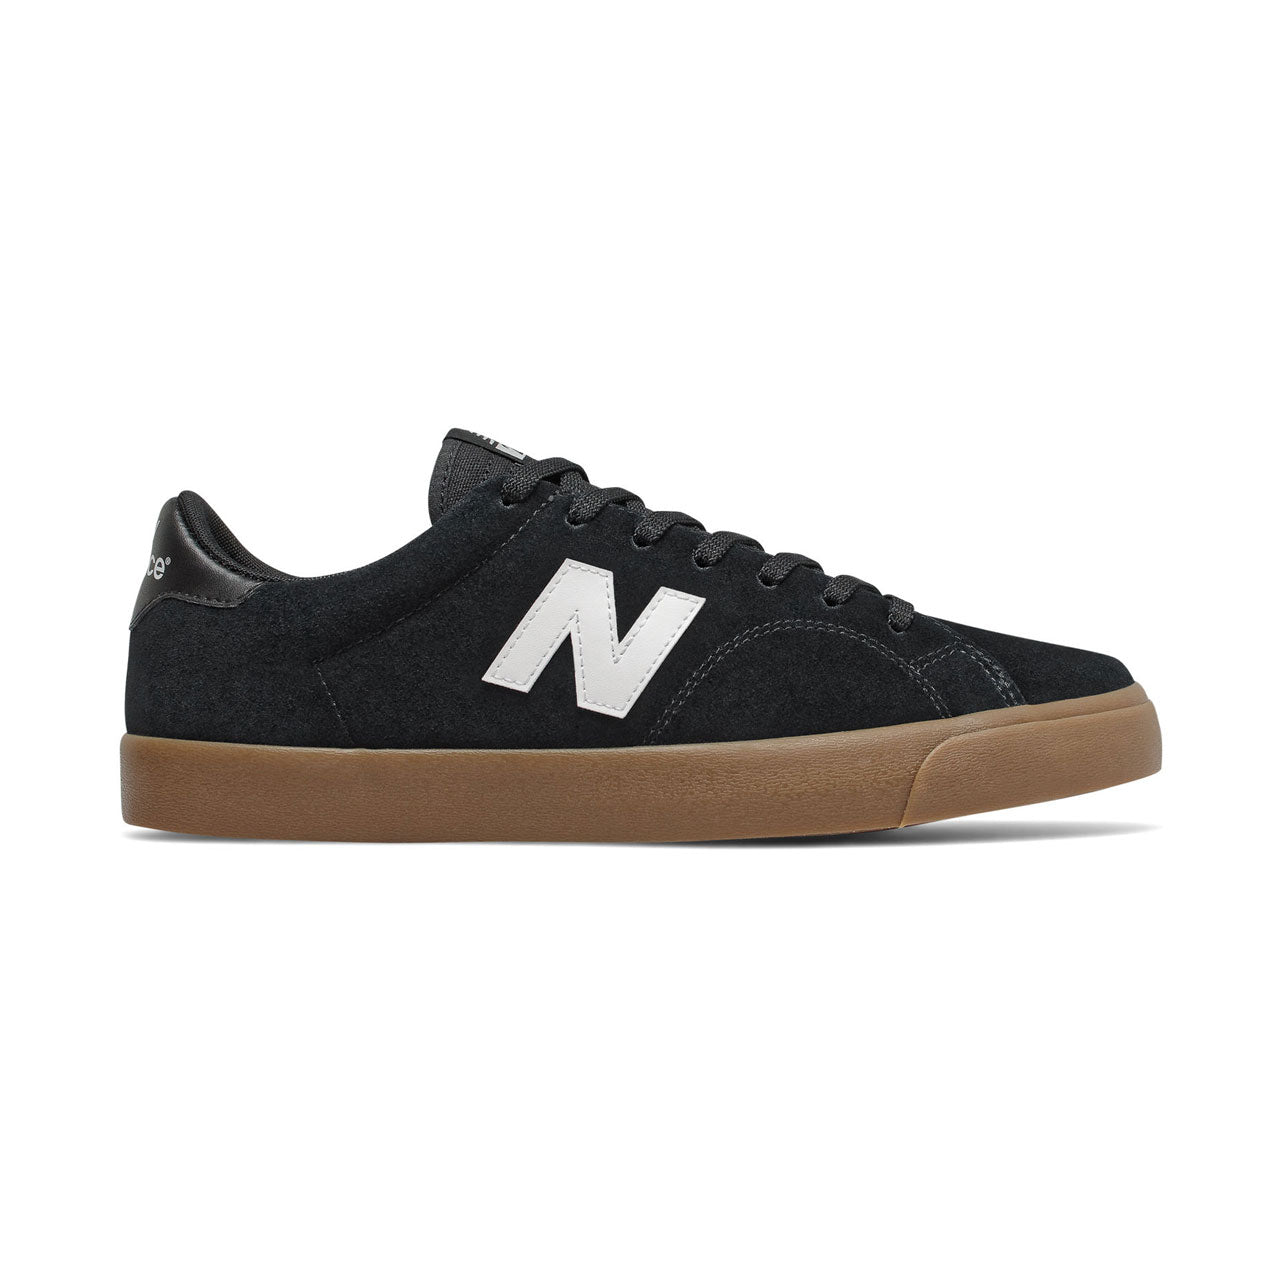 New Balance All Coast Sneakers